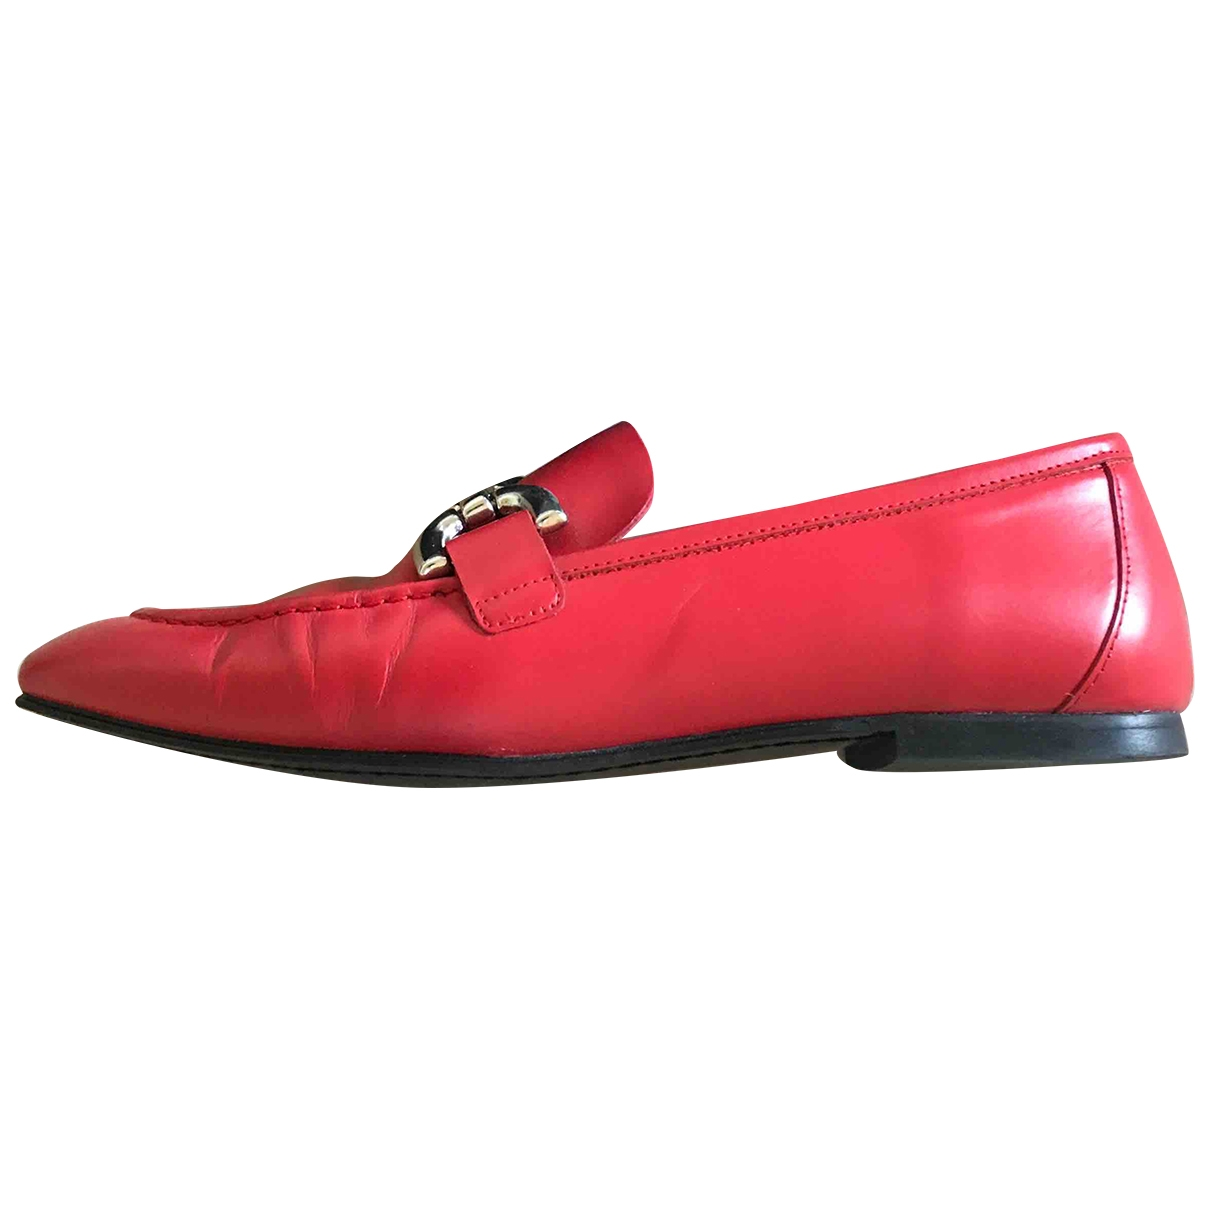 Uterque \N Red Leather Flats for Women 37 EU